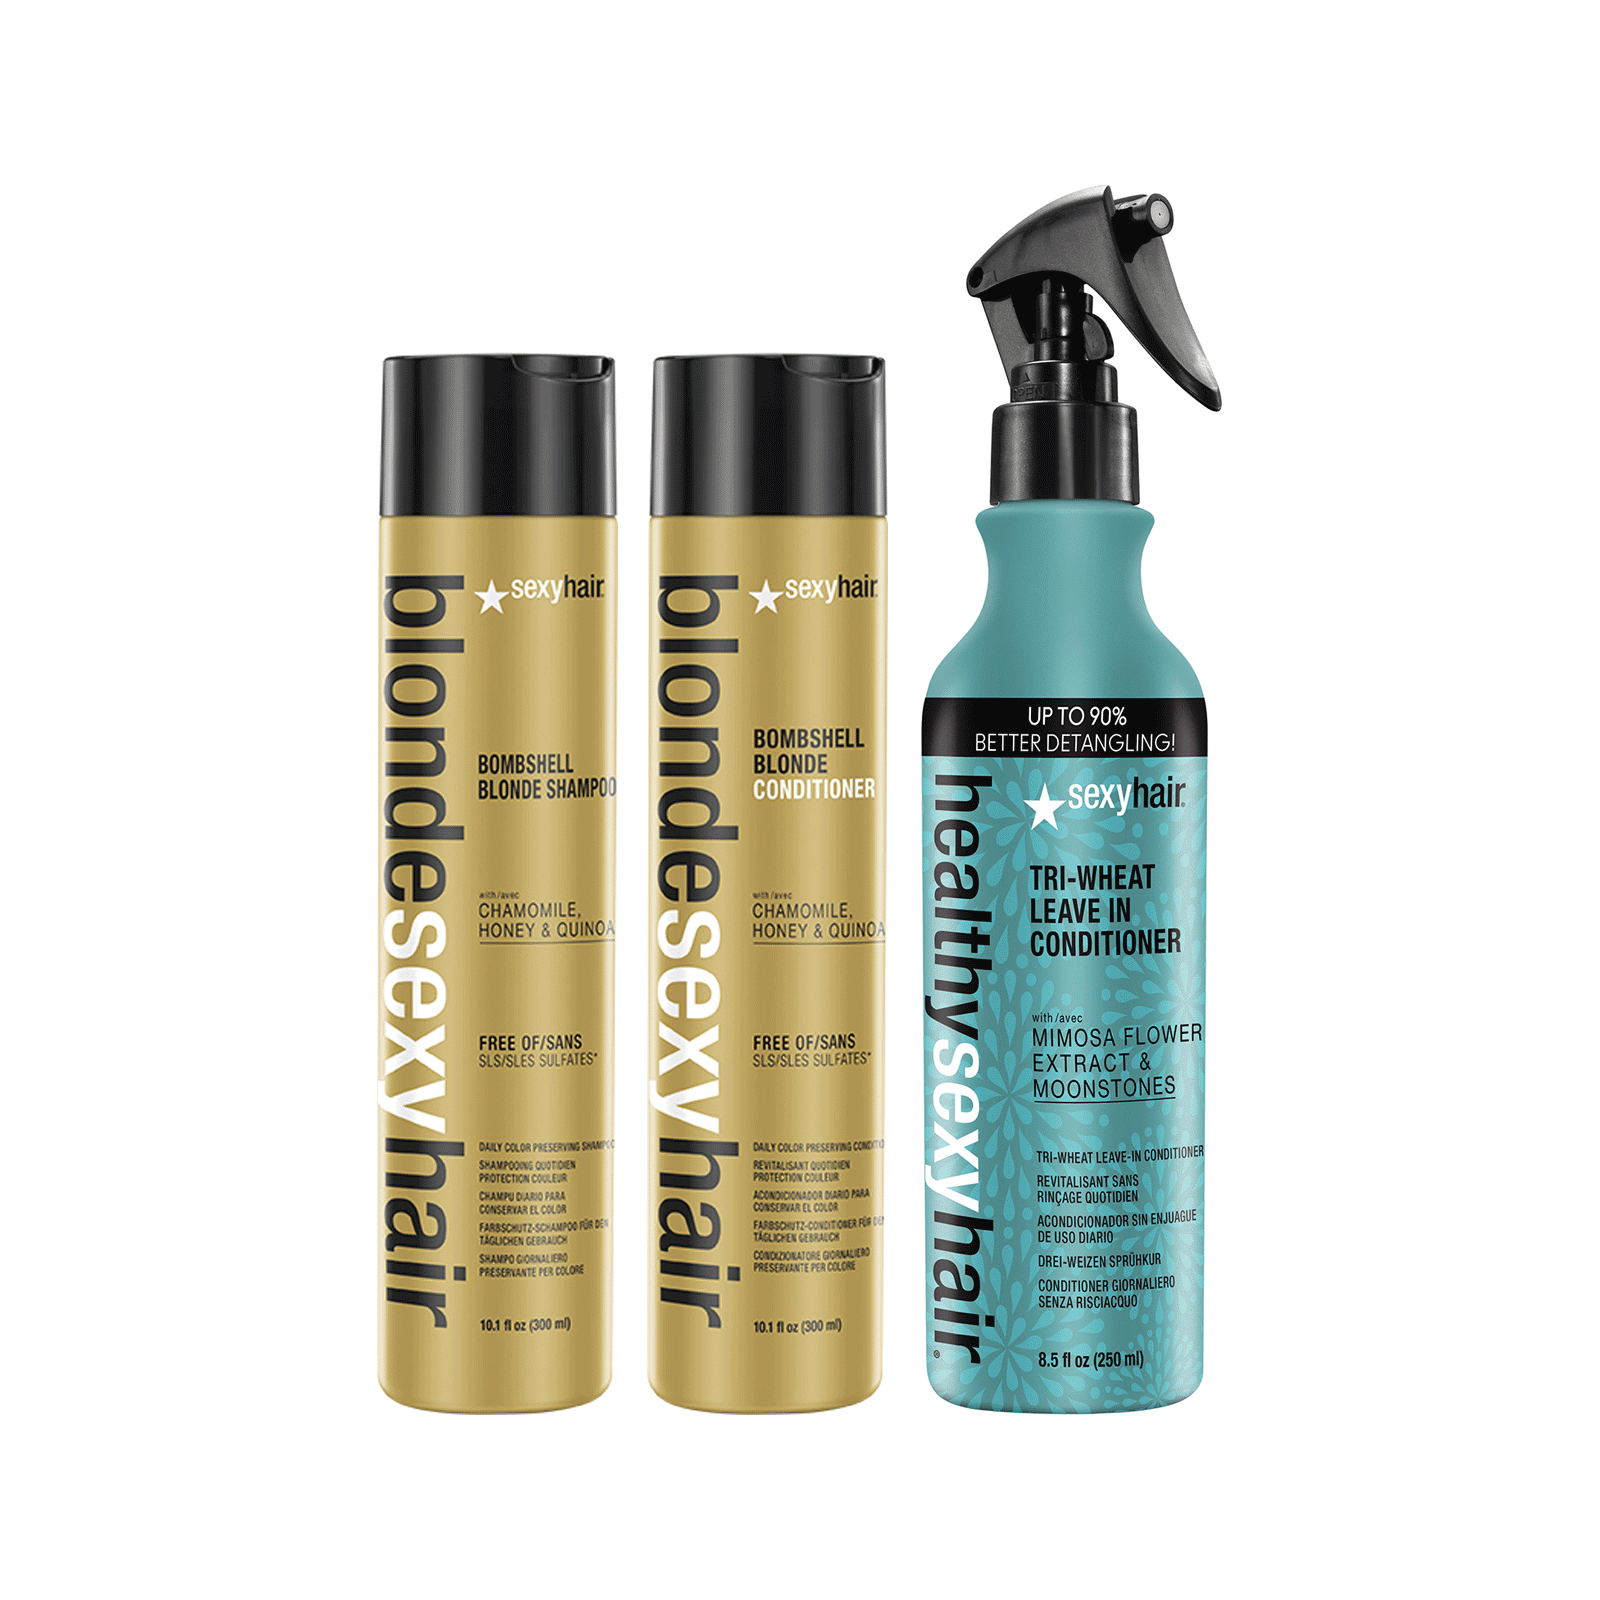 Blonde Sexy Hair Shampoo, Conditioner, Trio-Wheat Leave-In